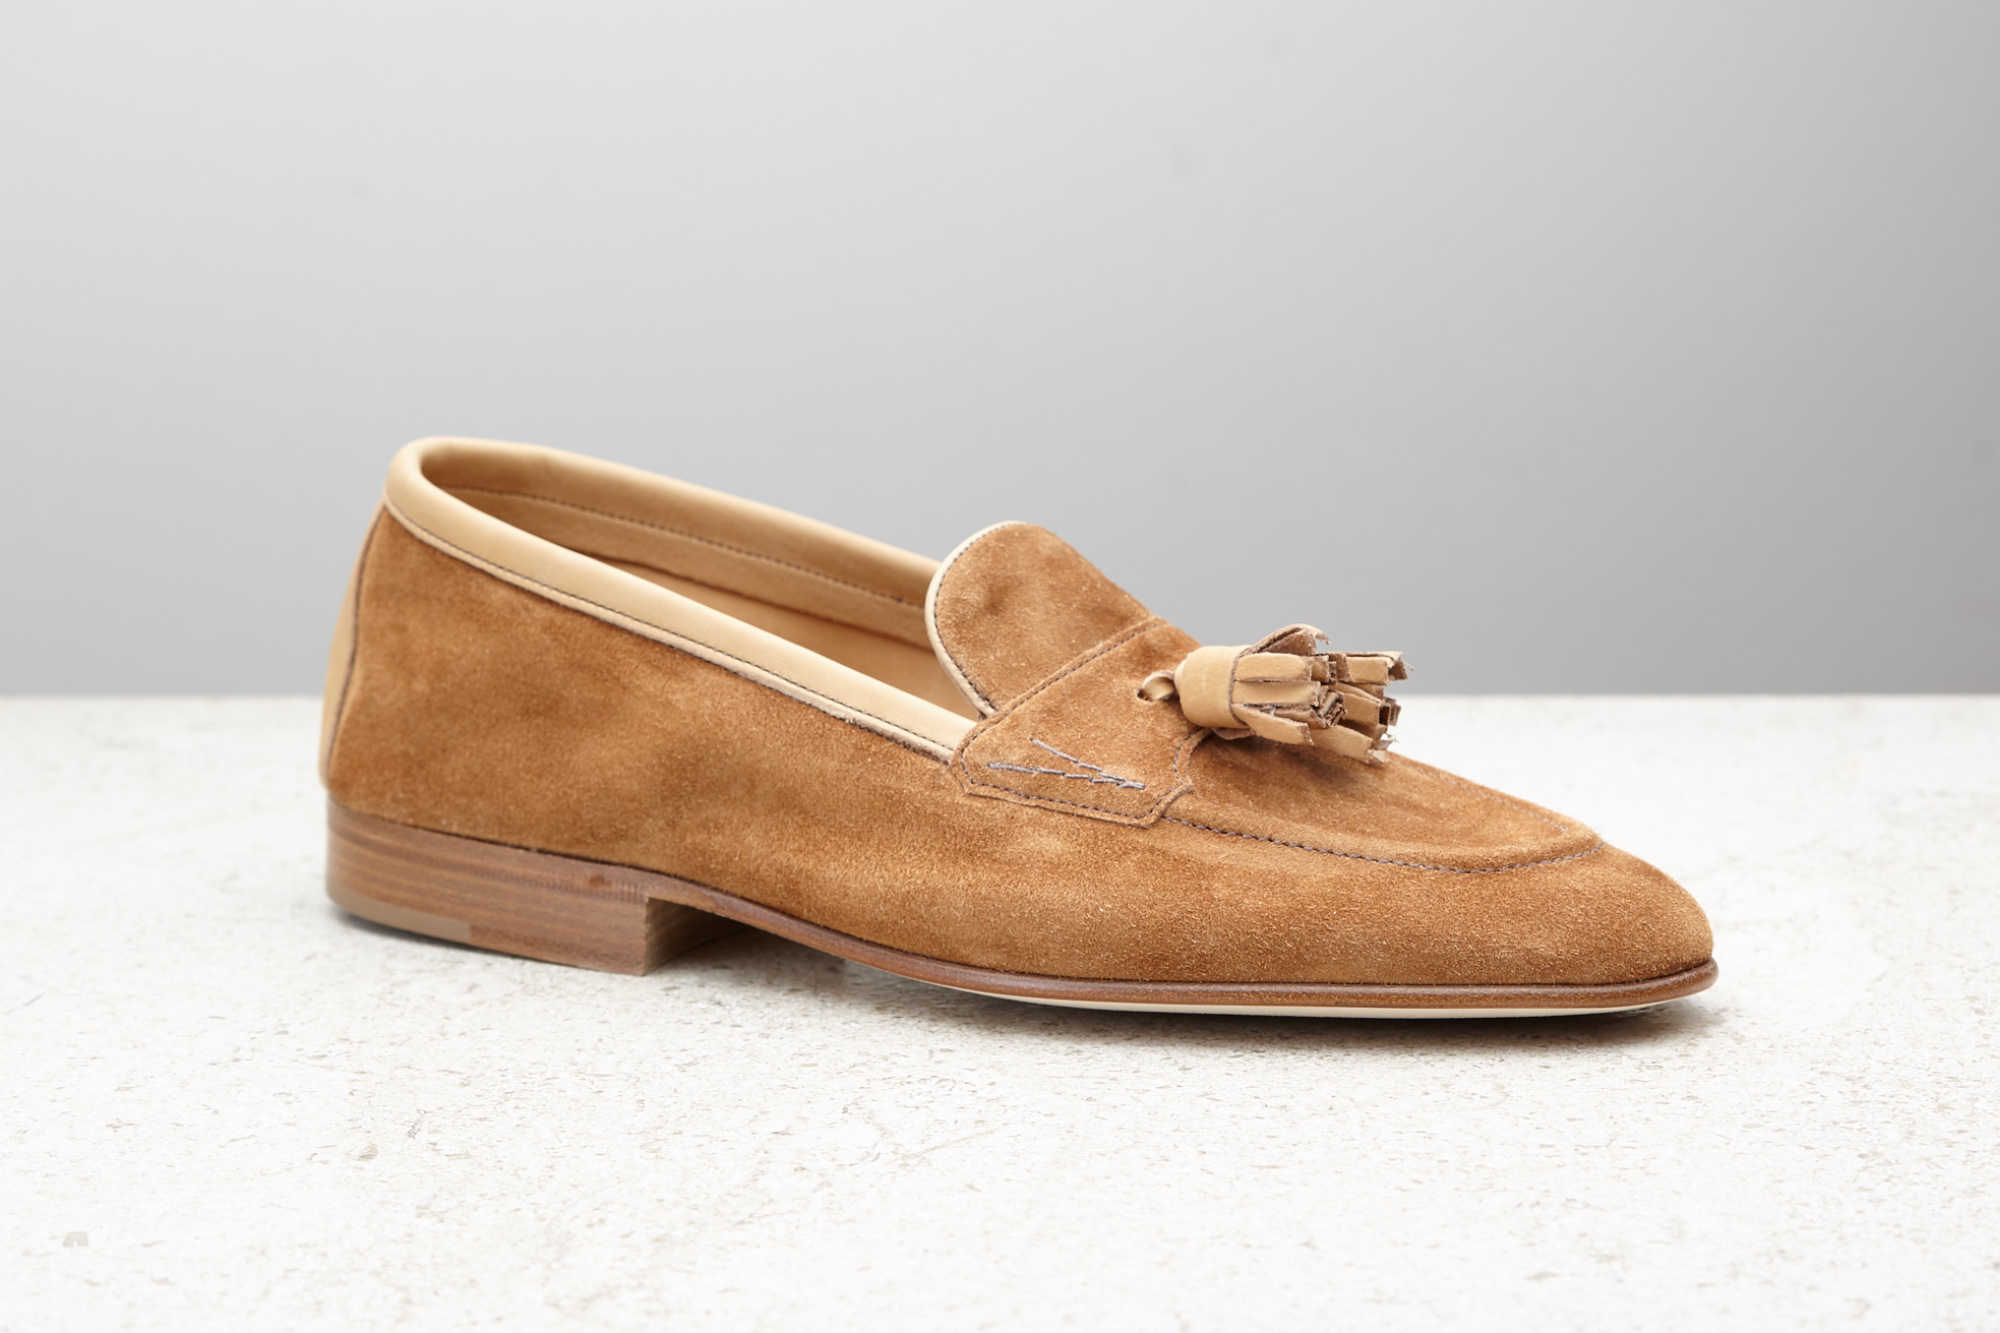 Edward Green Portland loafers in mace baby calf suede